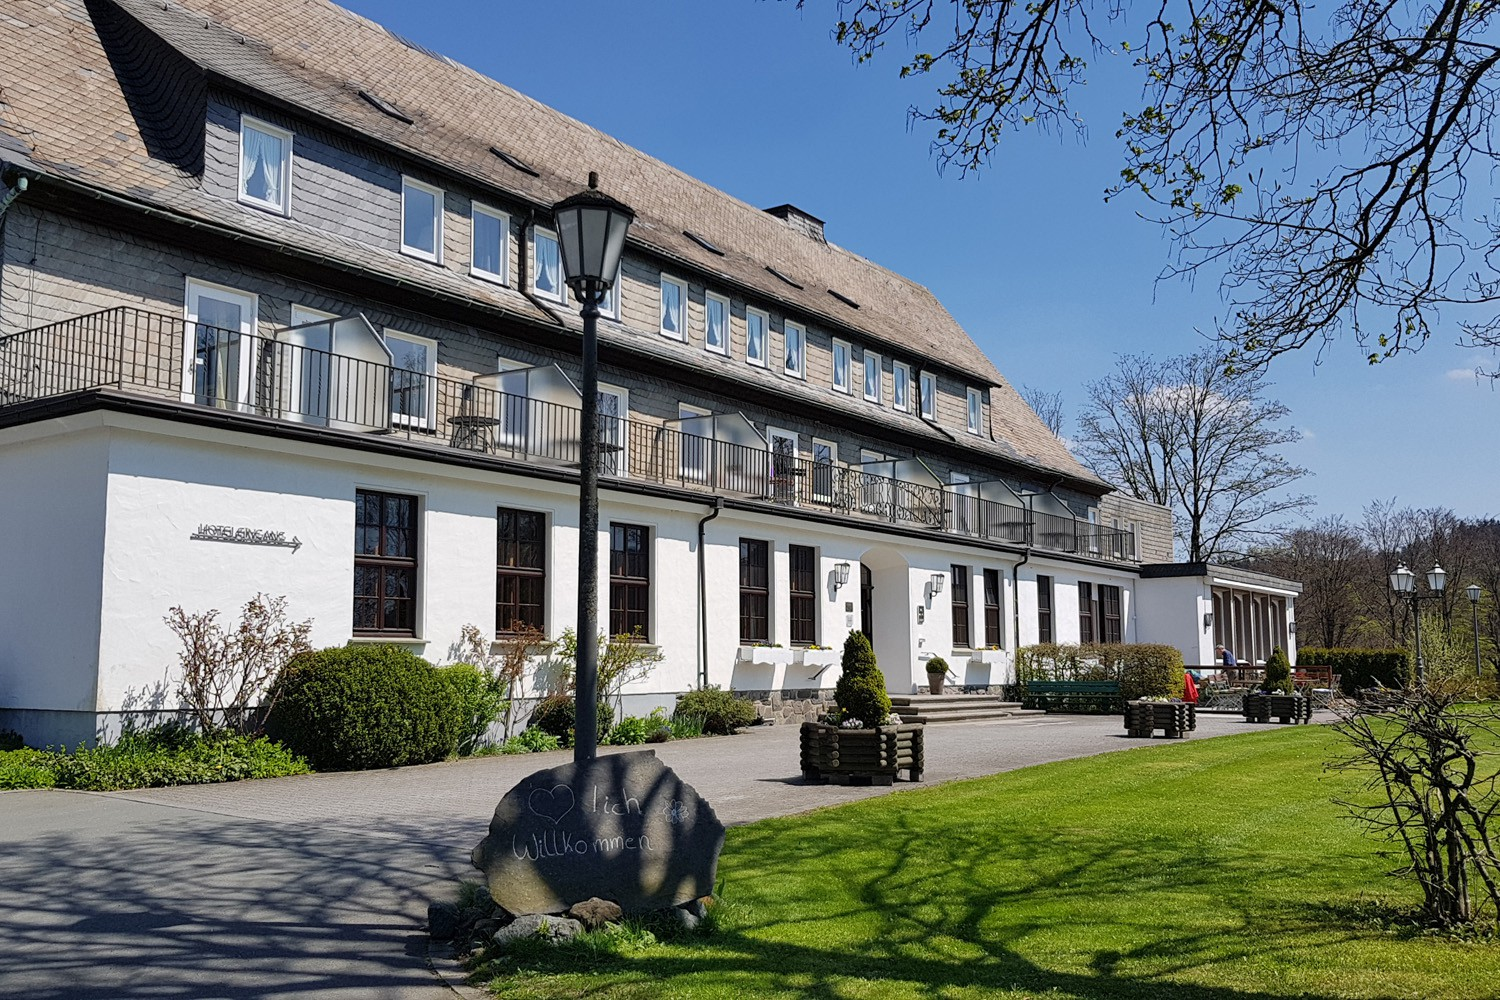 3 days 4* Berghotel Hoher Knochen in Schmallenberg in the Sauerland